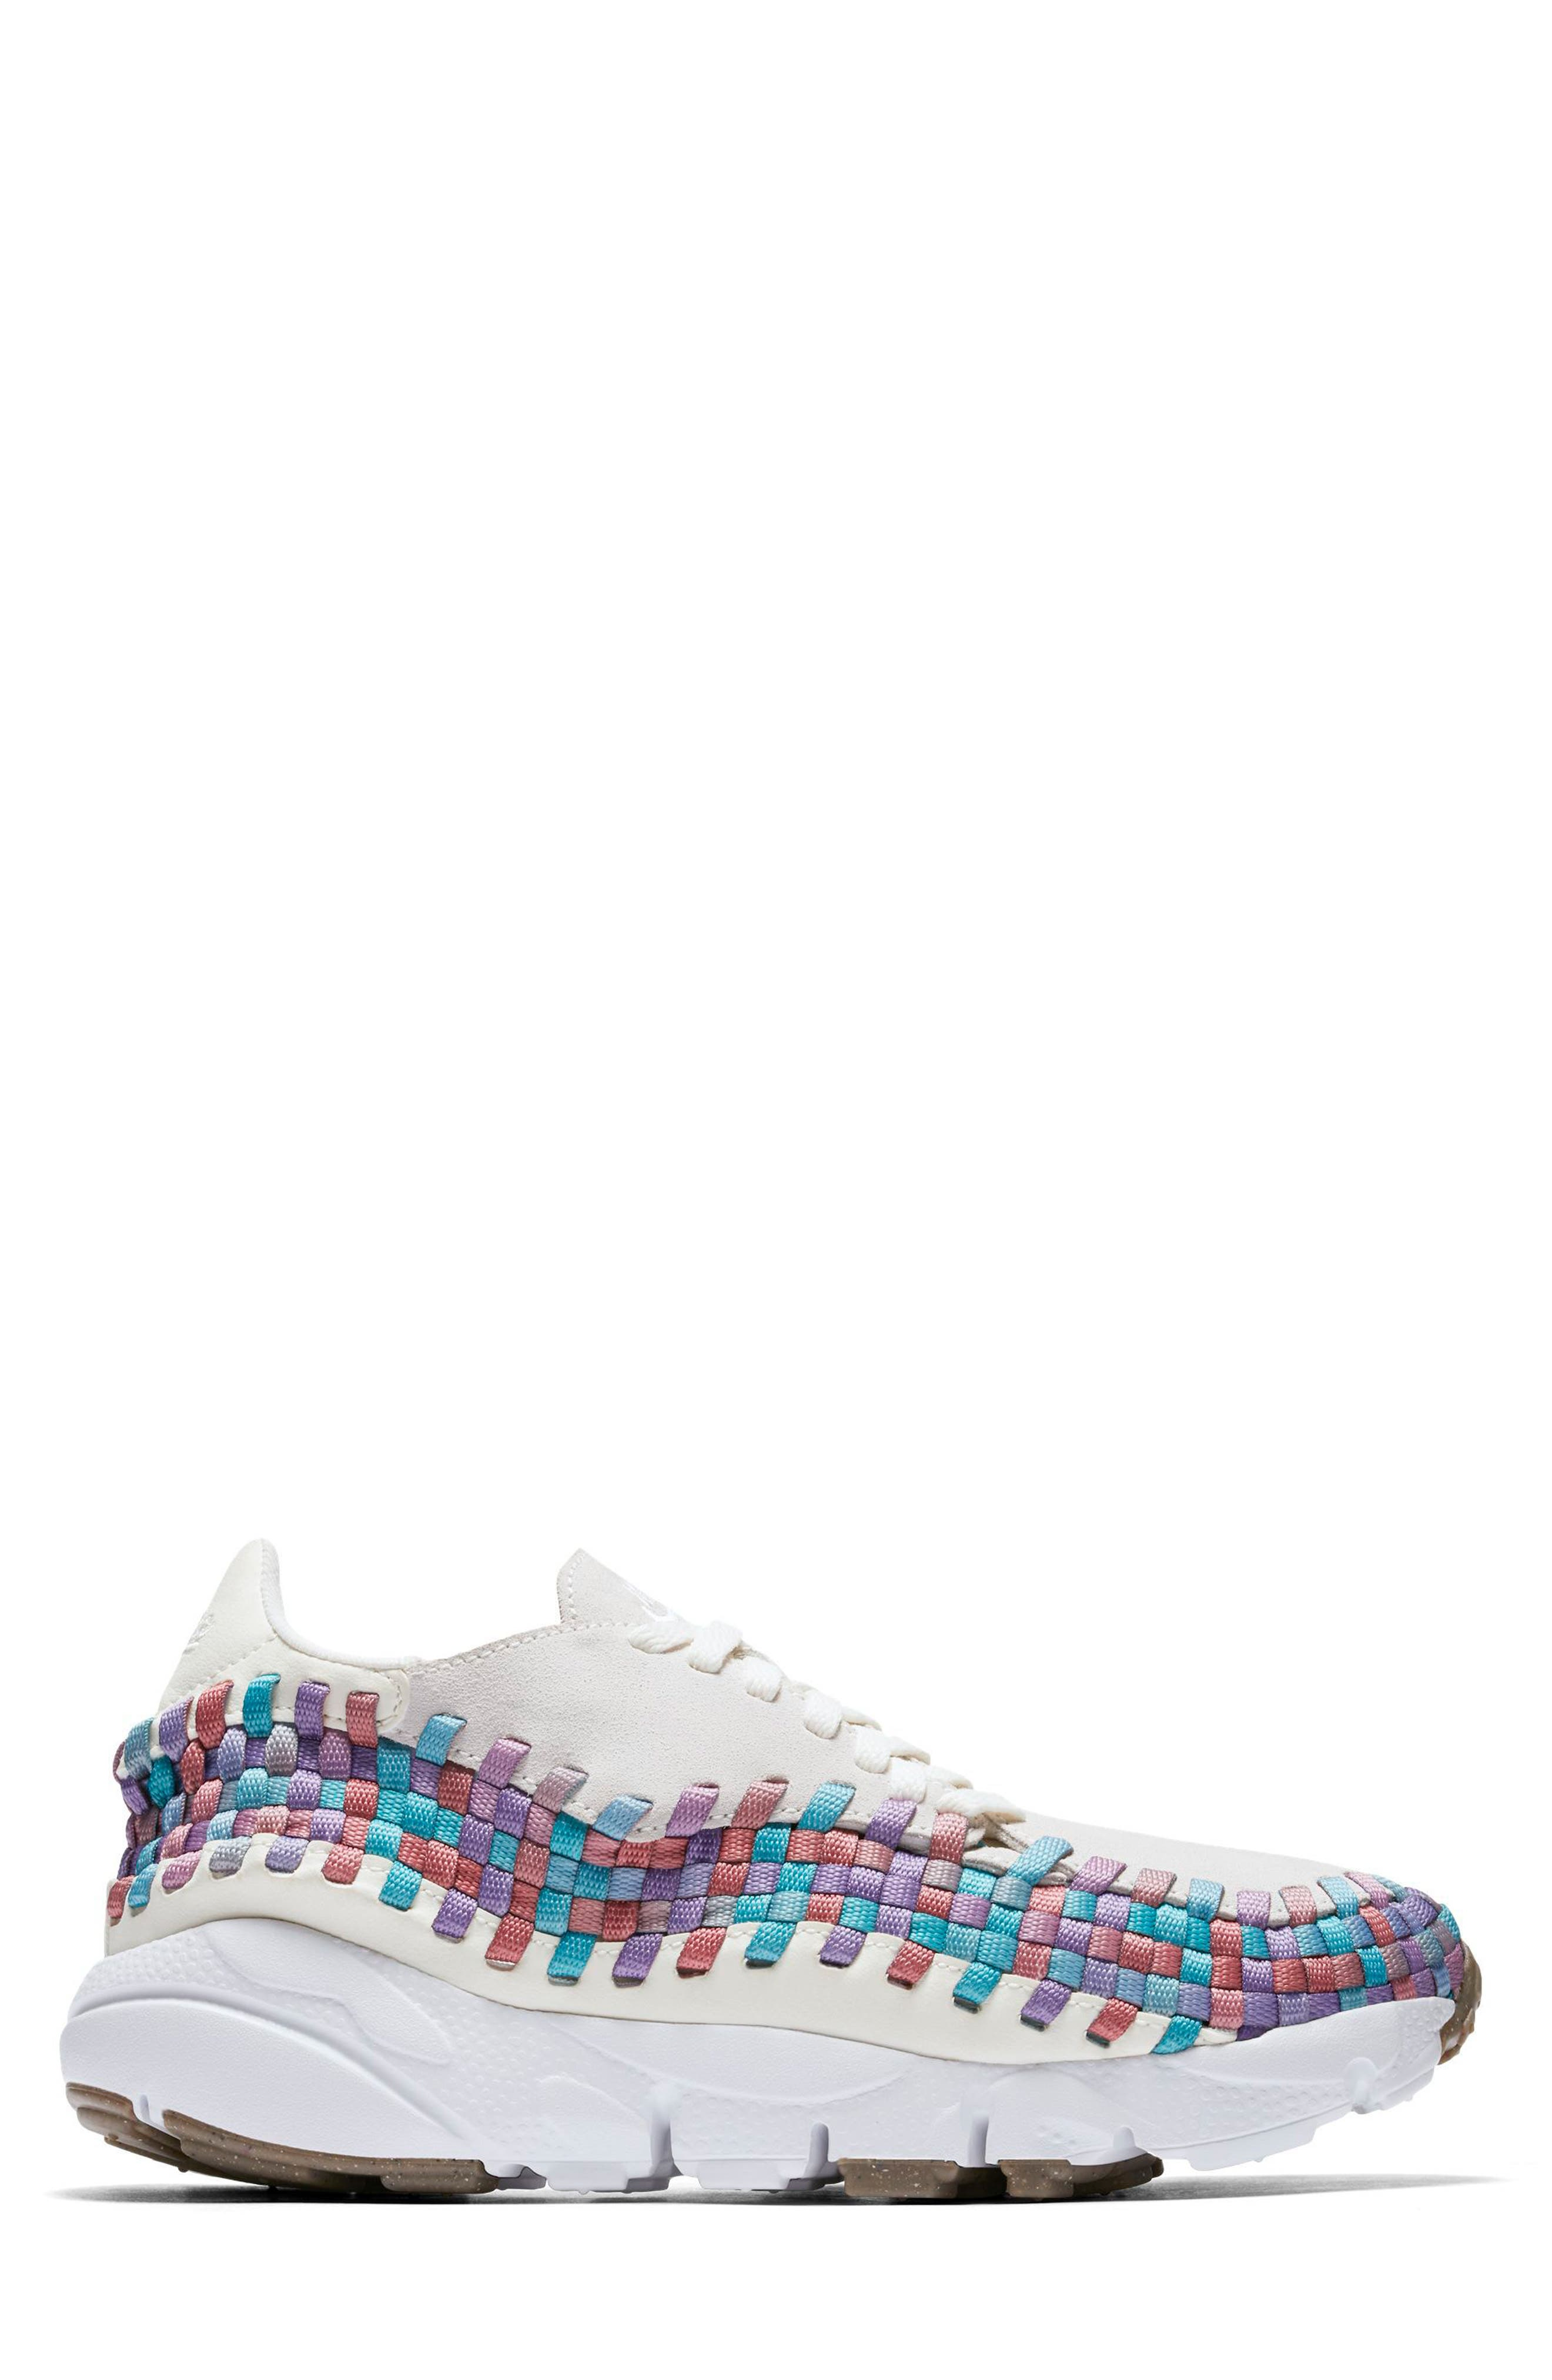 Air Footscape Woven Sneaker,                             Alternate thumbnail 3, color,                             Sail/ White/ Red/ Teal/ Gum